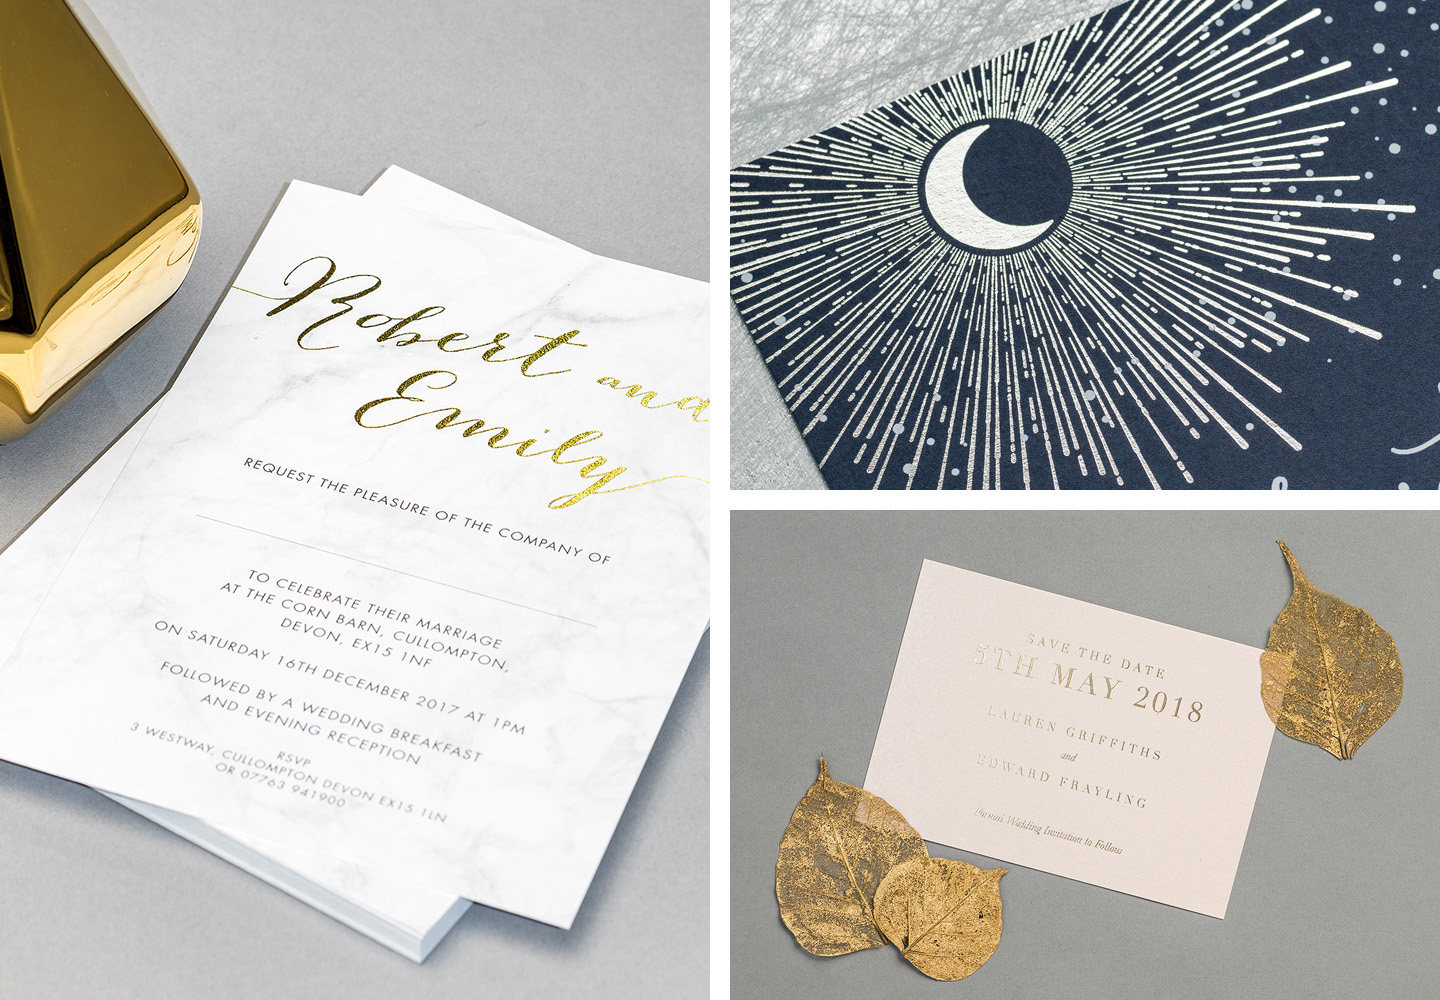 Luxury Wedding Stationery Trends 2018   The Foil Invite Company Blog